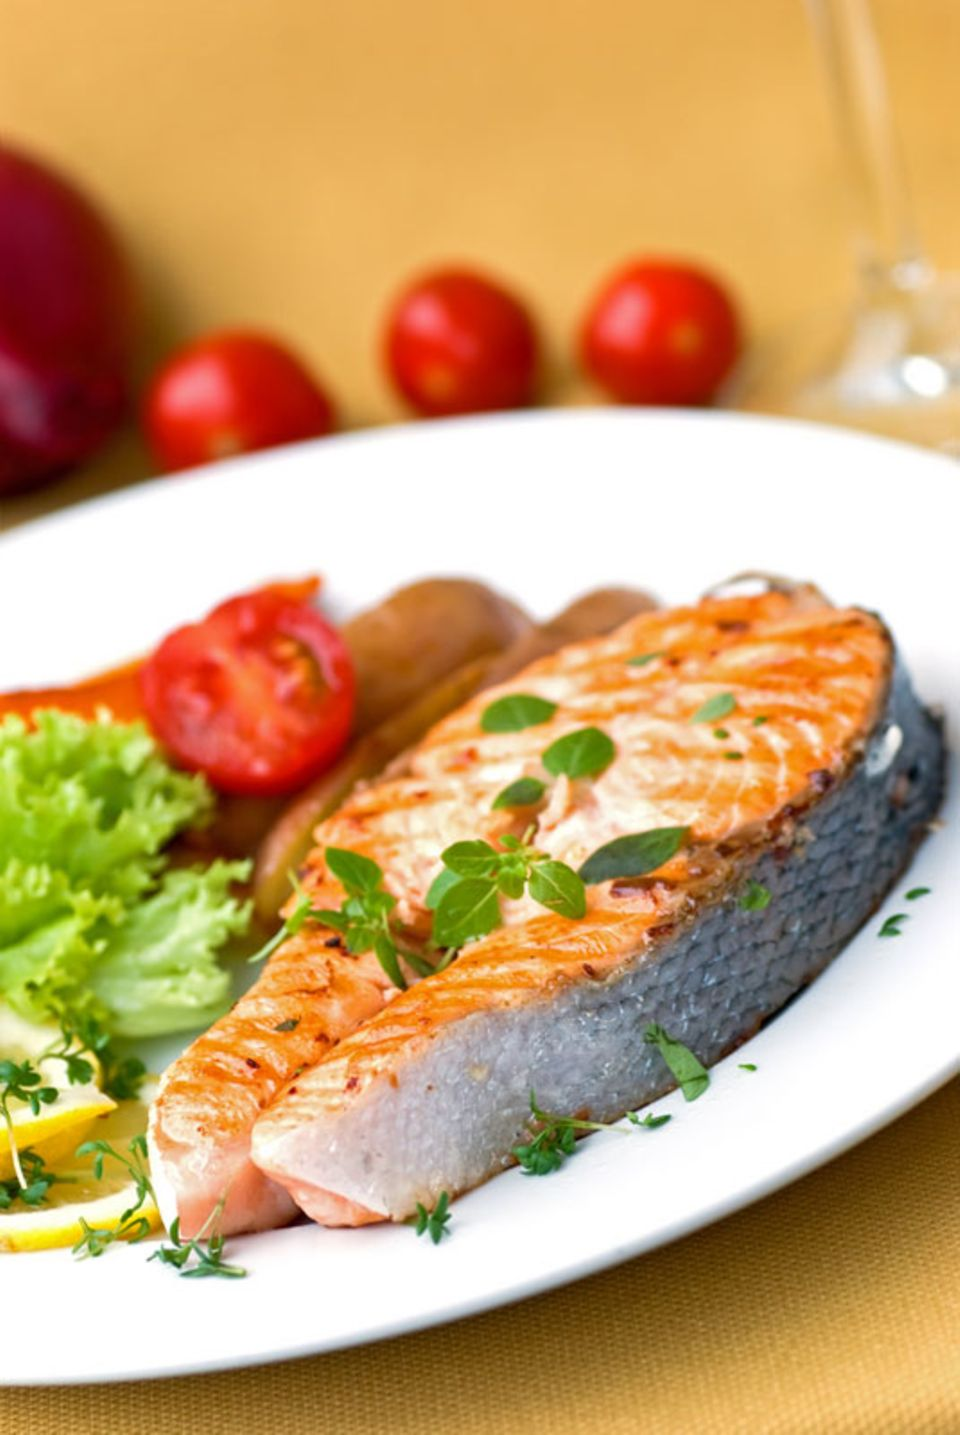 Grilled salmon with butterfly cut